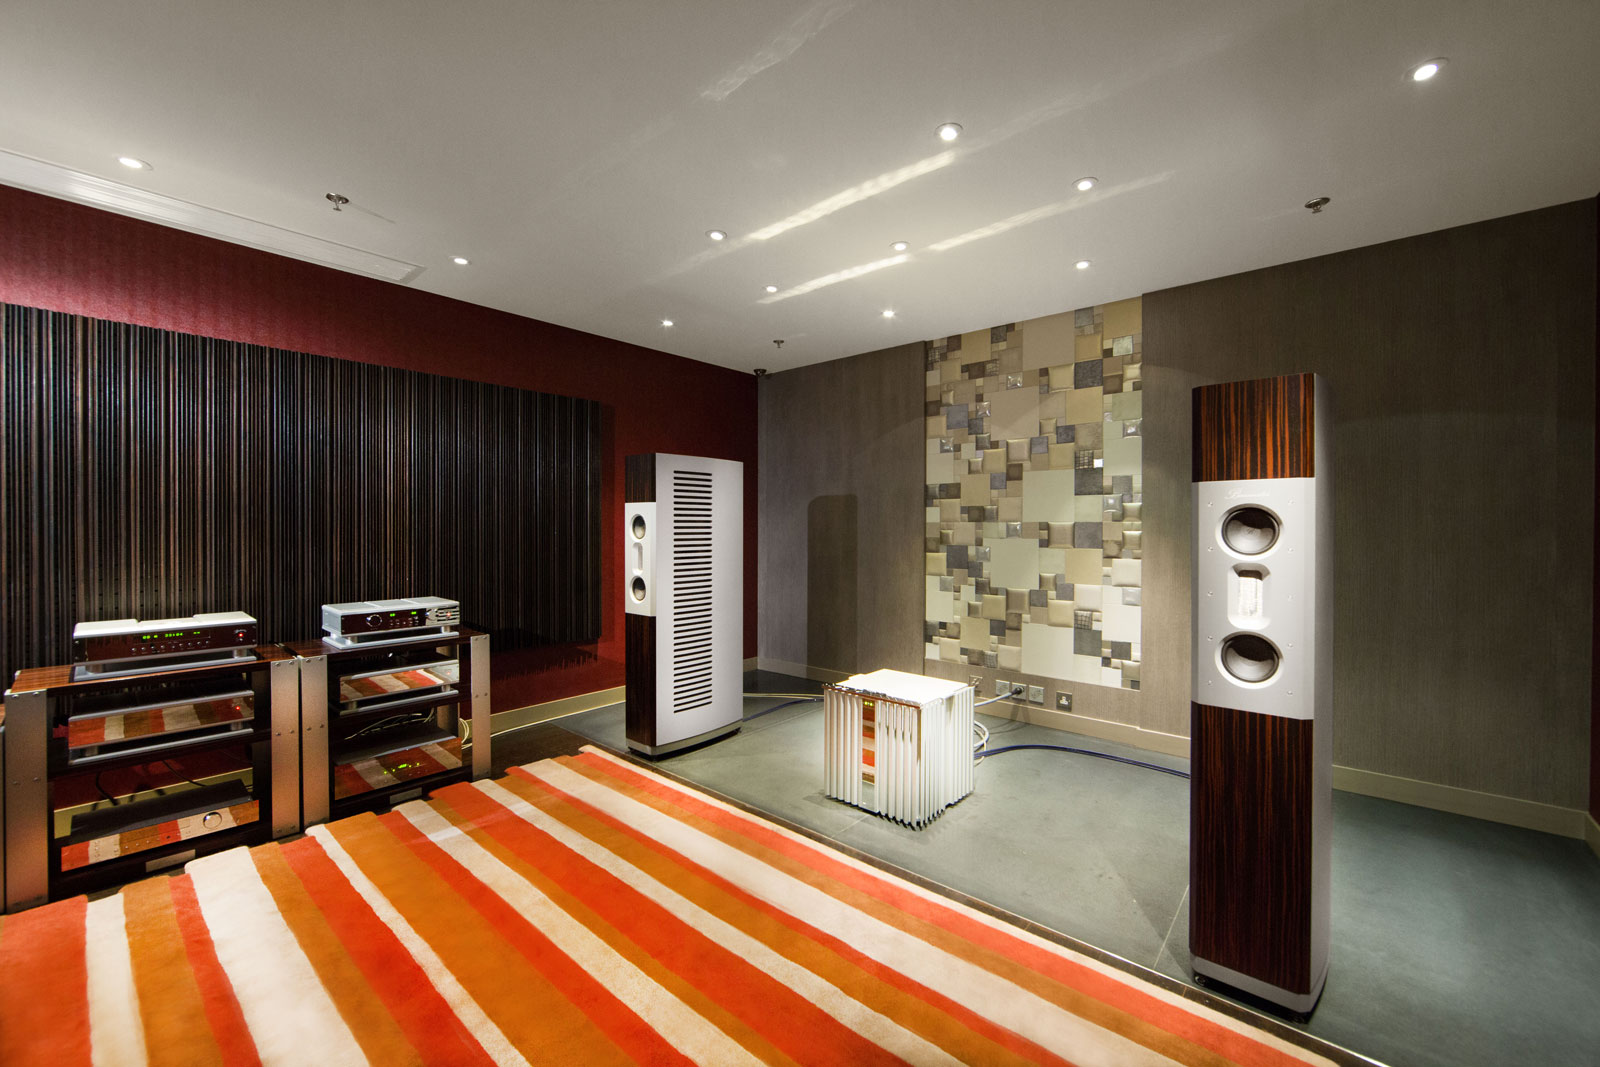 As is similar to all our demo rooms, the Burmester room is also acoustically treated to create a listening space which is tonally balanced with a smooth response through the resonances.